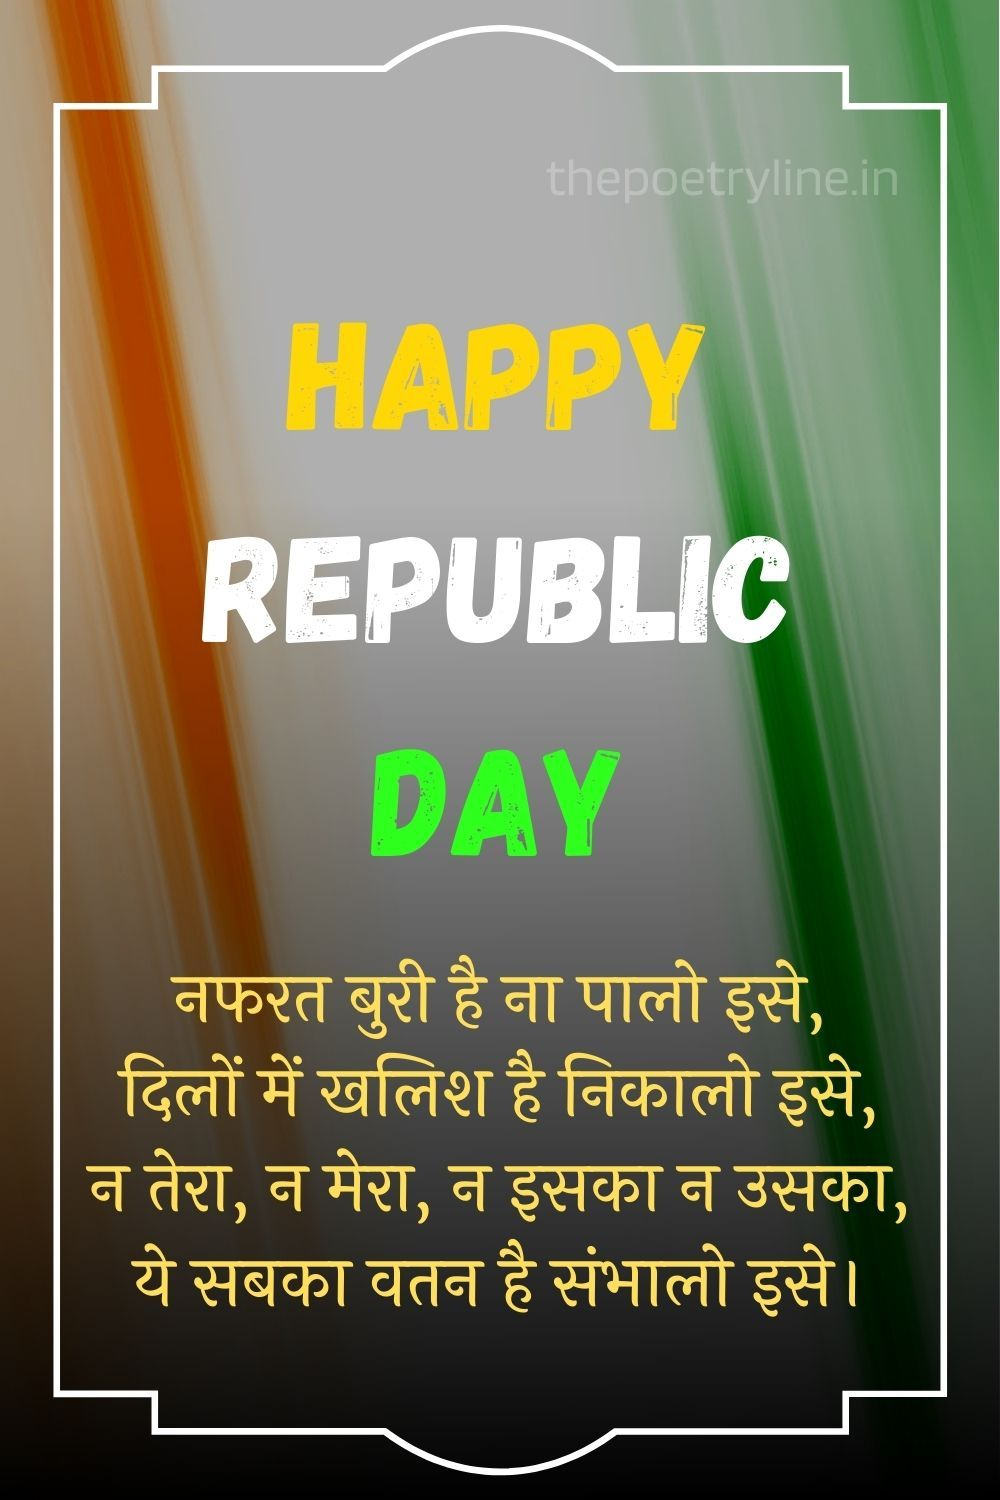 Happy Republic Day 2021 Images In Hindi In 2021 Republic Day Motivational Quotes For Success Hindi Quotes Happy republic day in hindi status